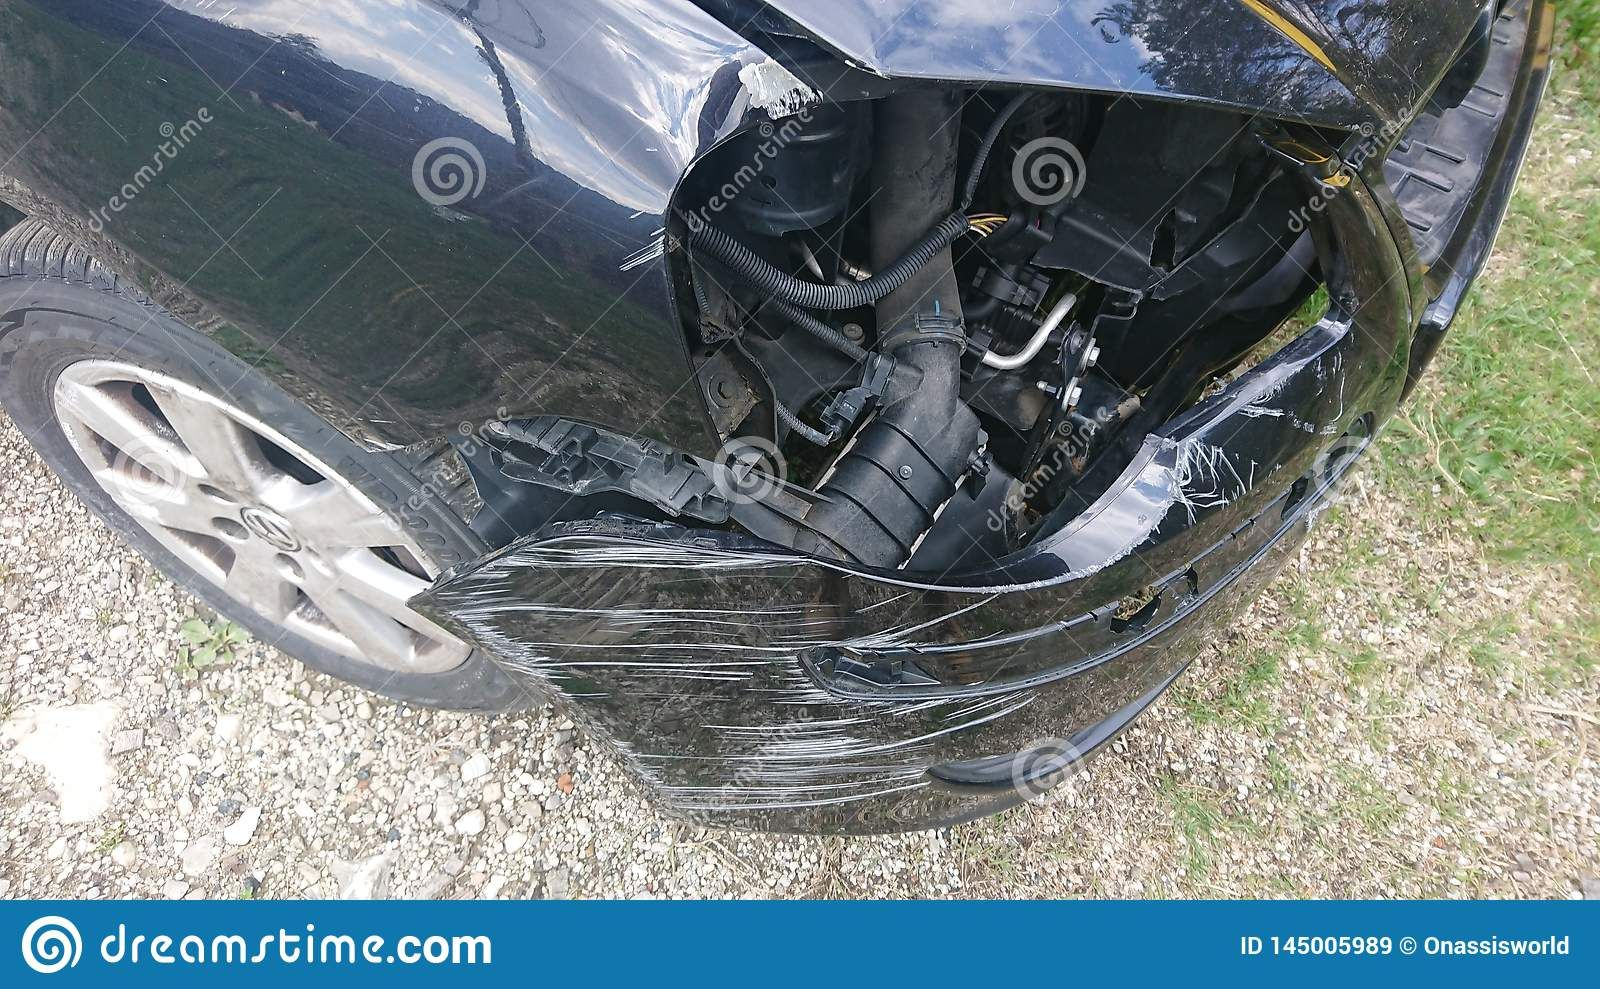 Photo About Closeup Of A Damaged Car After A Car Road Accident